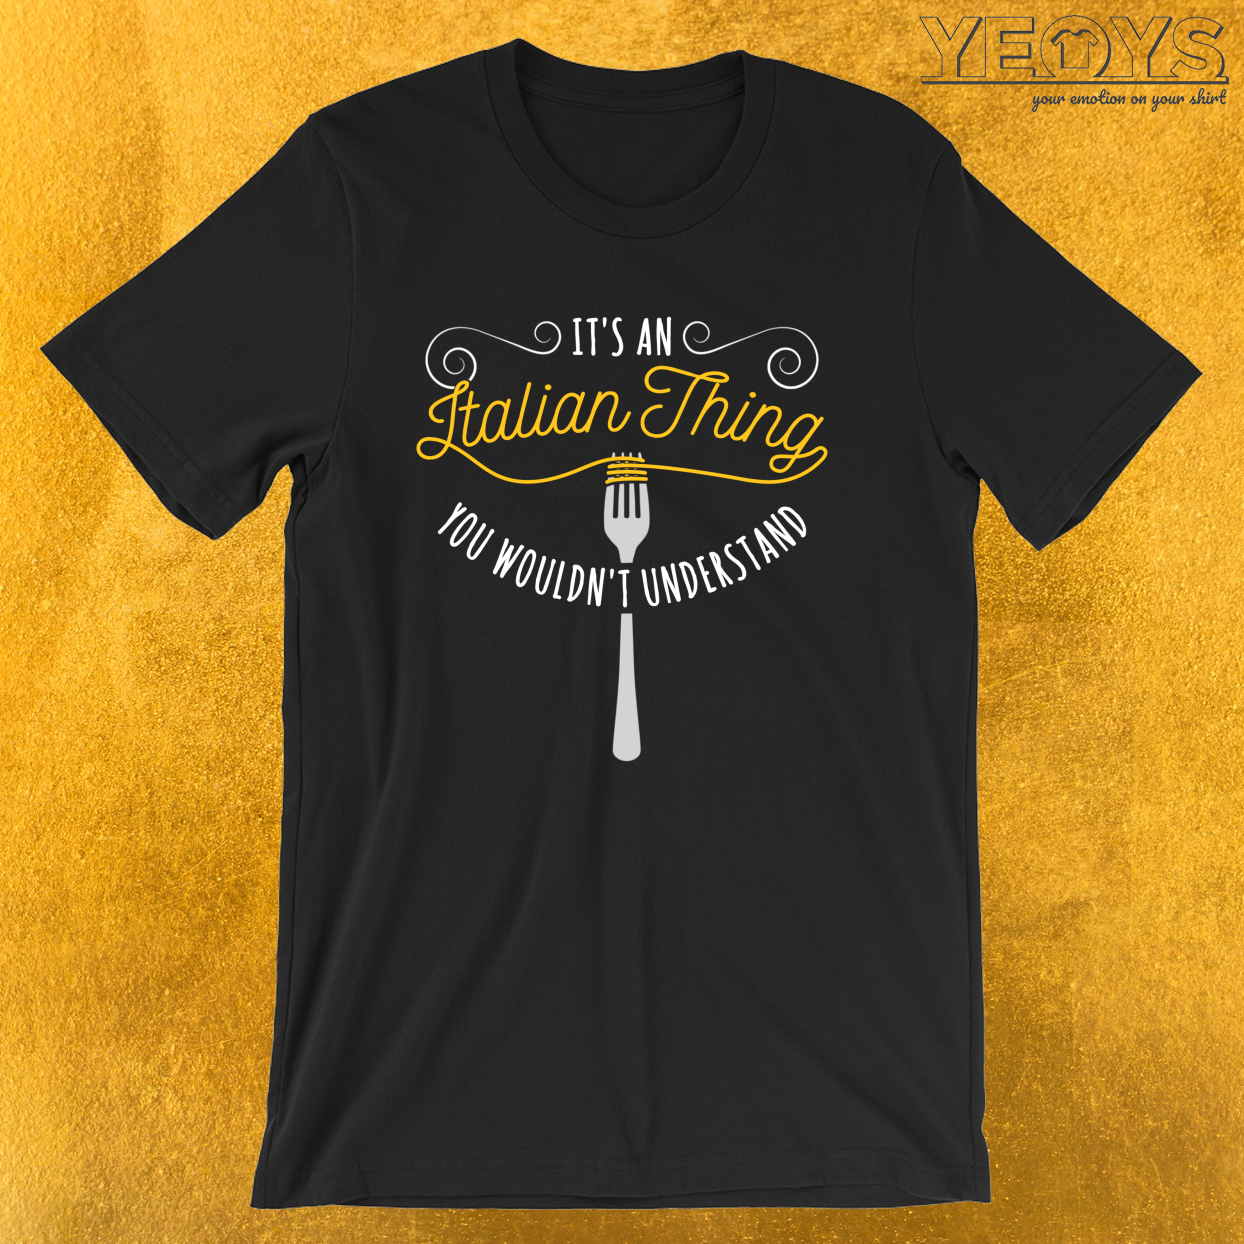 It's An Italian Thing You Wouldn't Understand – Funny I Love Italian Pasta Tee